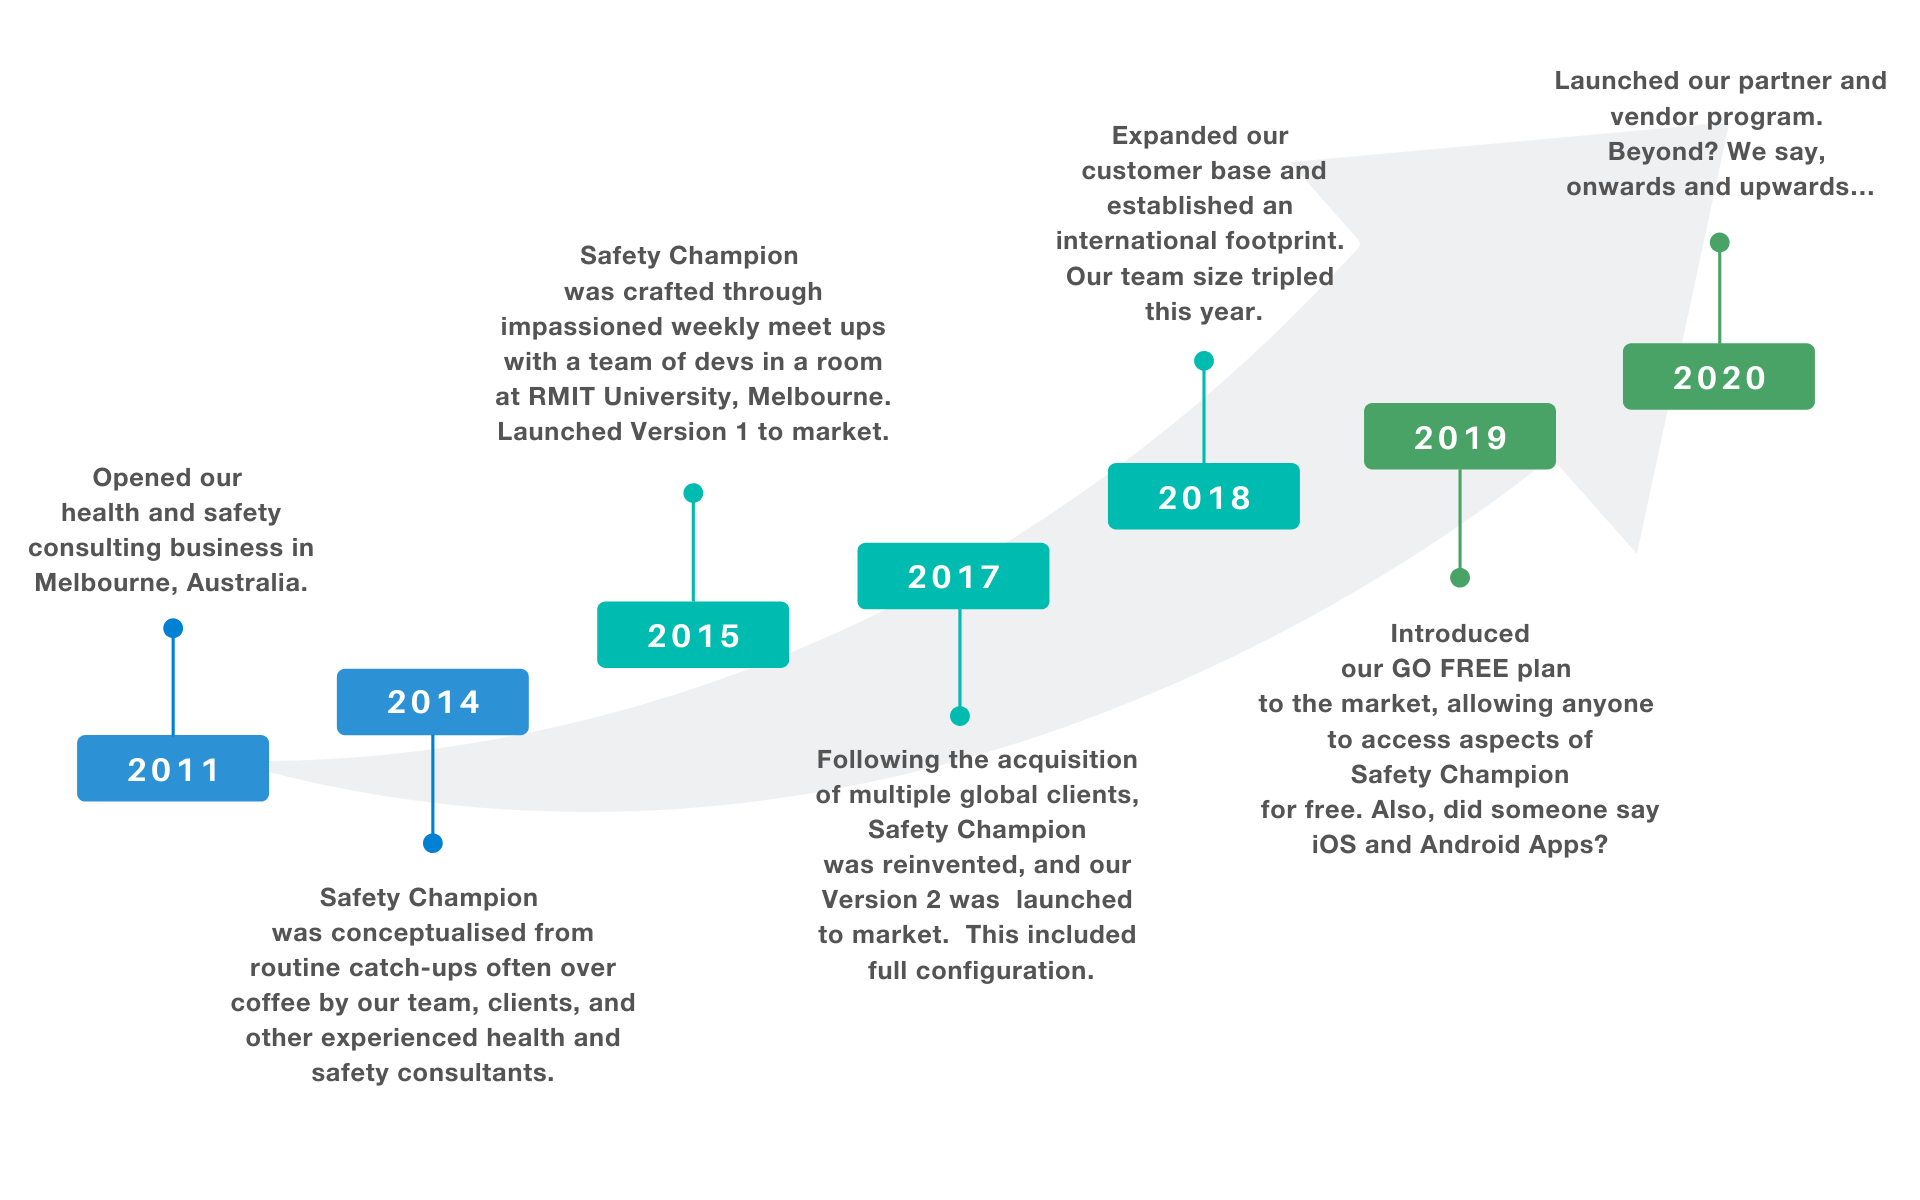 About Us Page Timeline